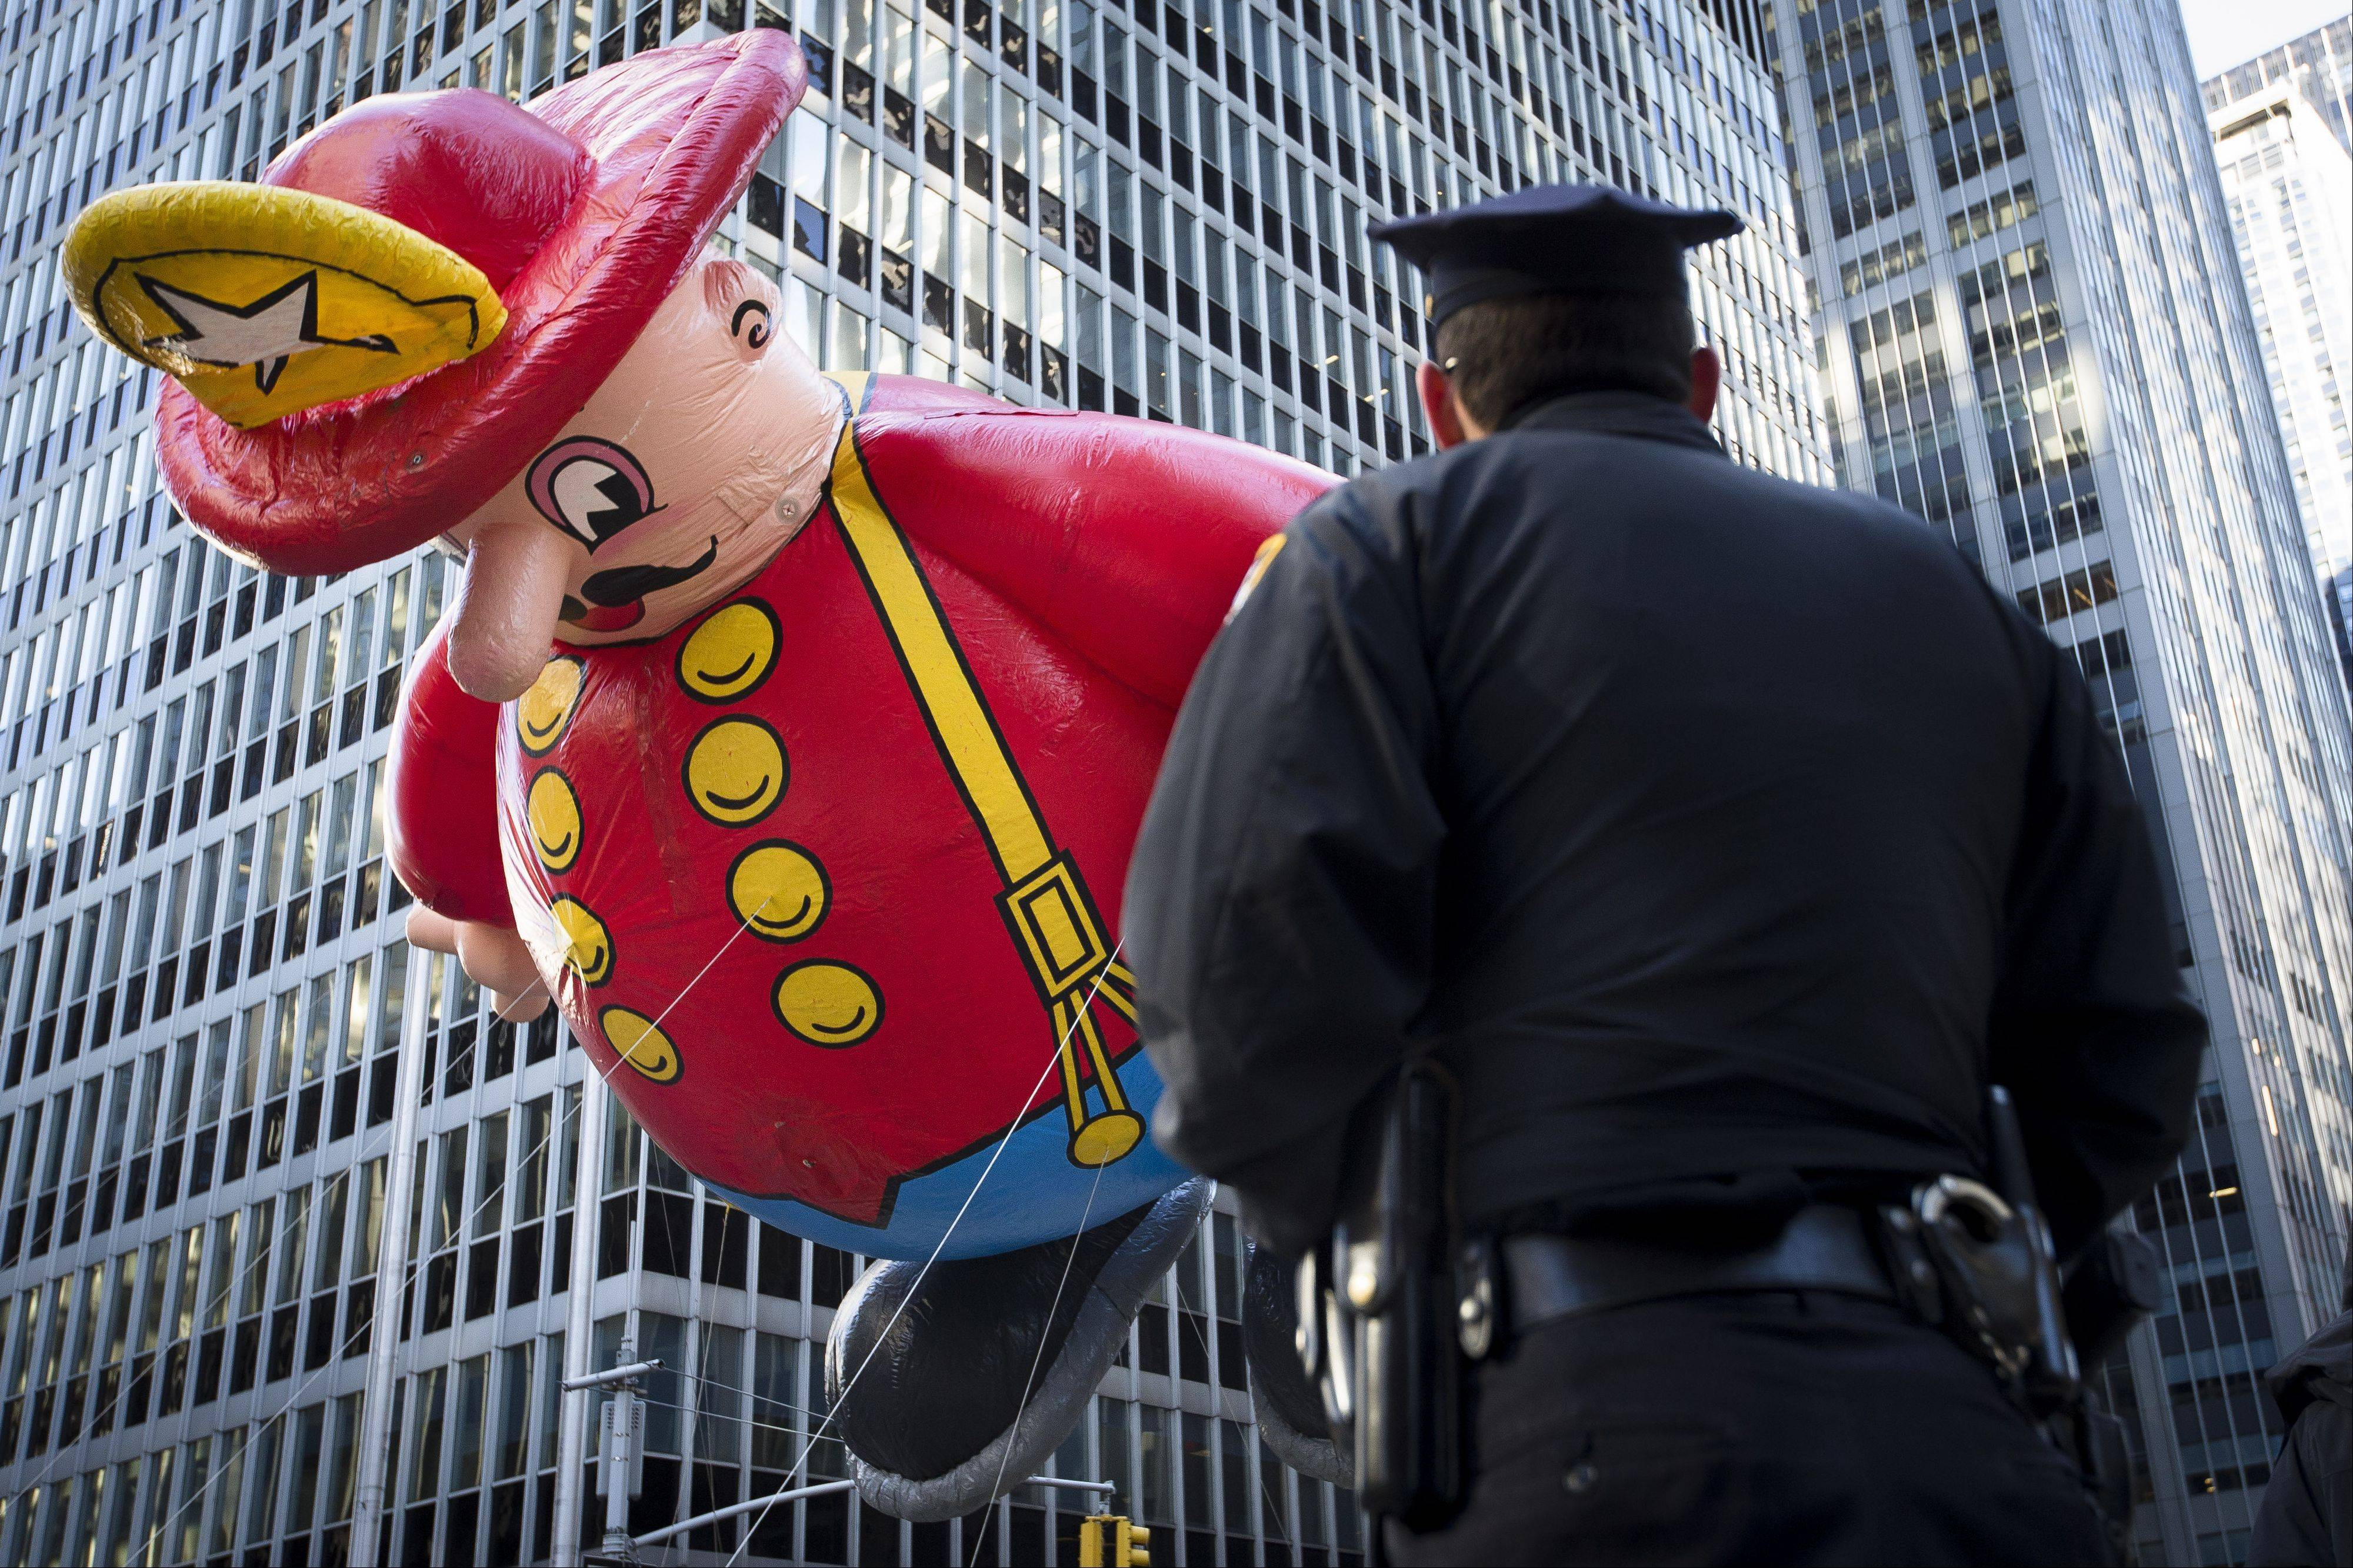 A police officer stands on 6th Avenue as a giant fireman balloon passes during the 87th Annual Macy's Thanksgiving Day Parade Thursday in New York. After fears the balloons could be grounded if sustained winds exceeded 23 mph, Snoopy, Spider-Man and the rest of the iconic balloons received the all-clear from the New York Police Department to fly between Manhattan skyscrapers on Thursday.